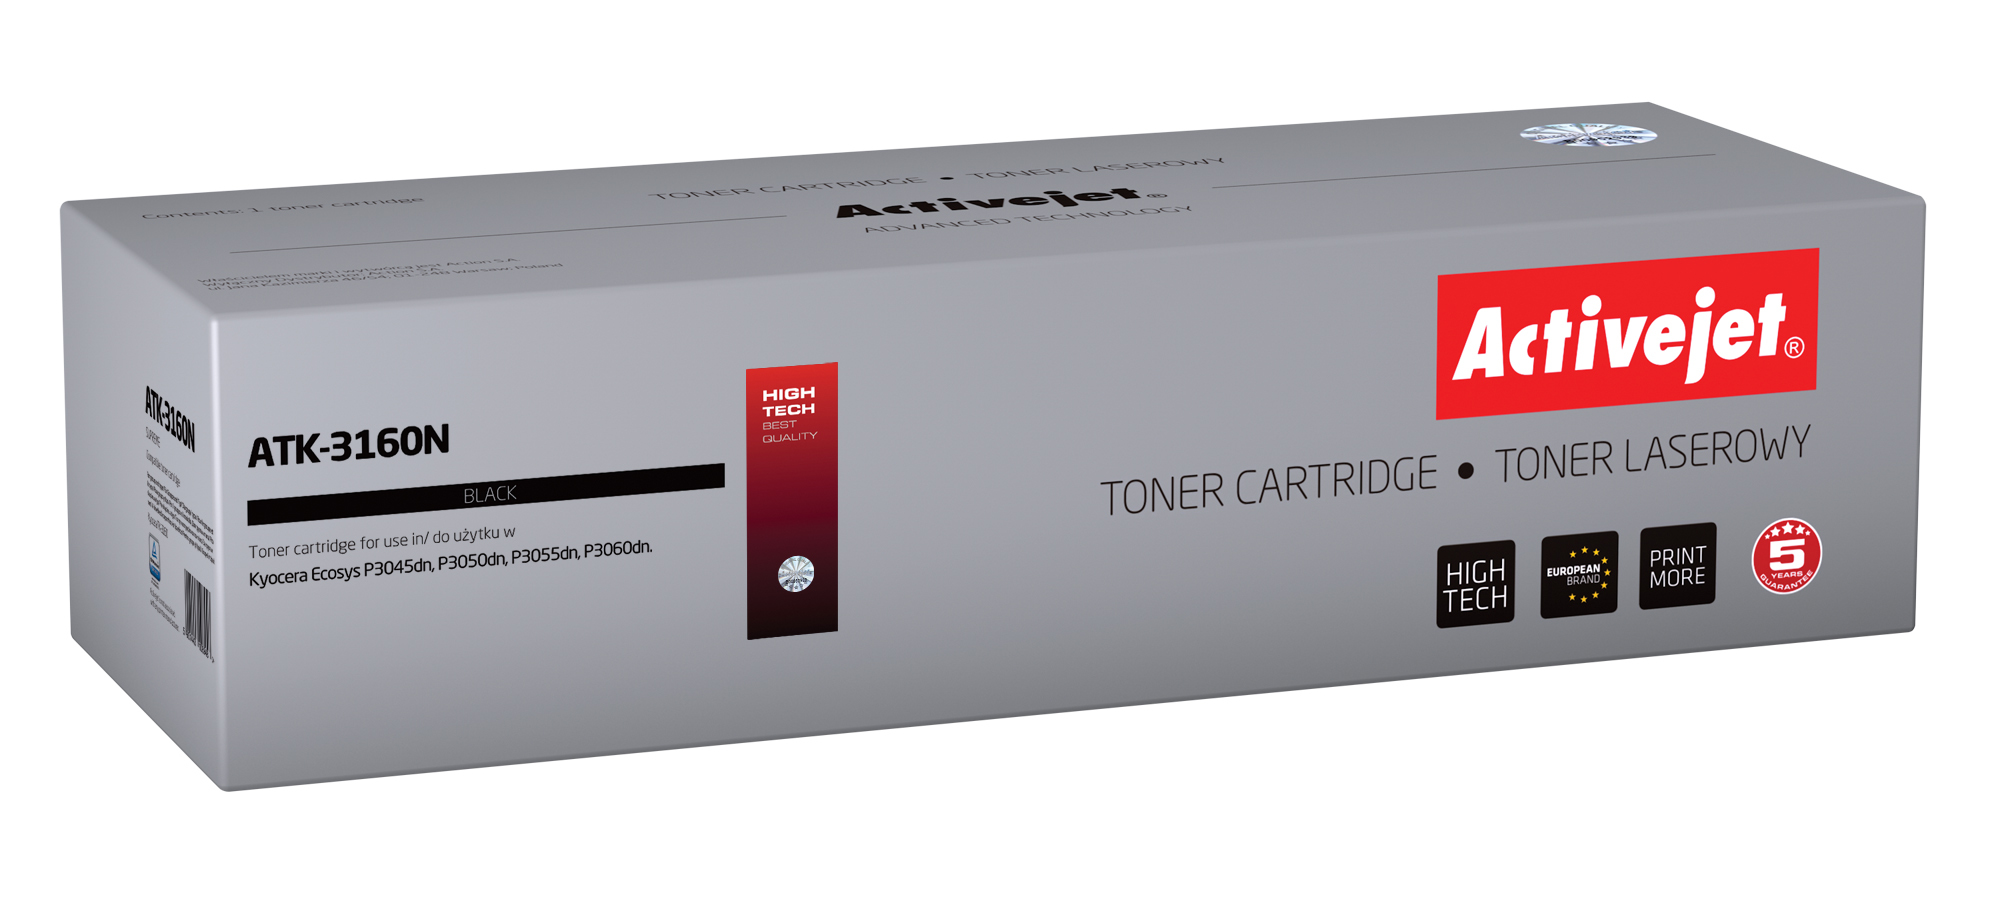 Activejet toner do Kyocera TK-3160 new ATK-3160N